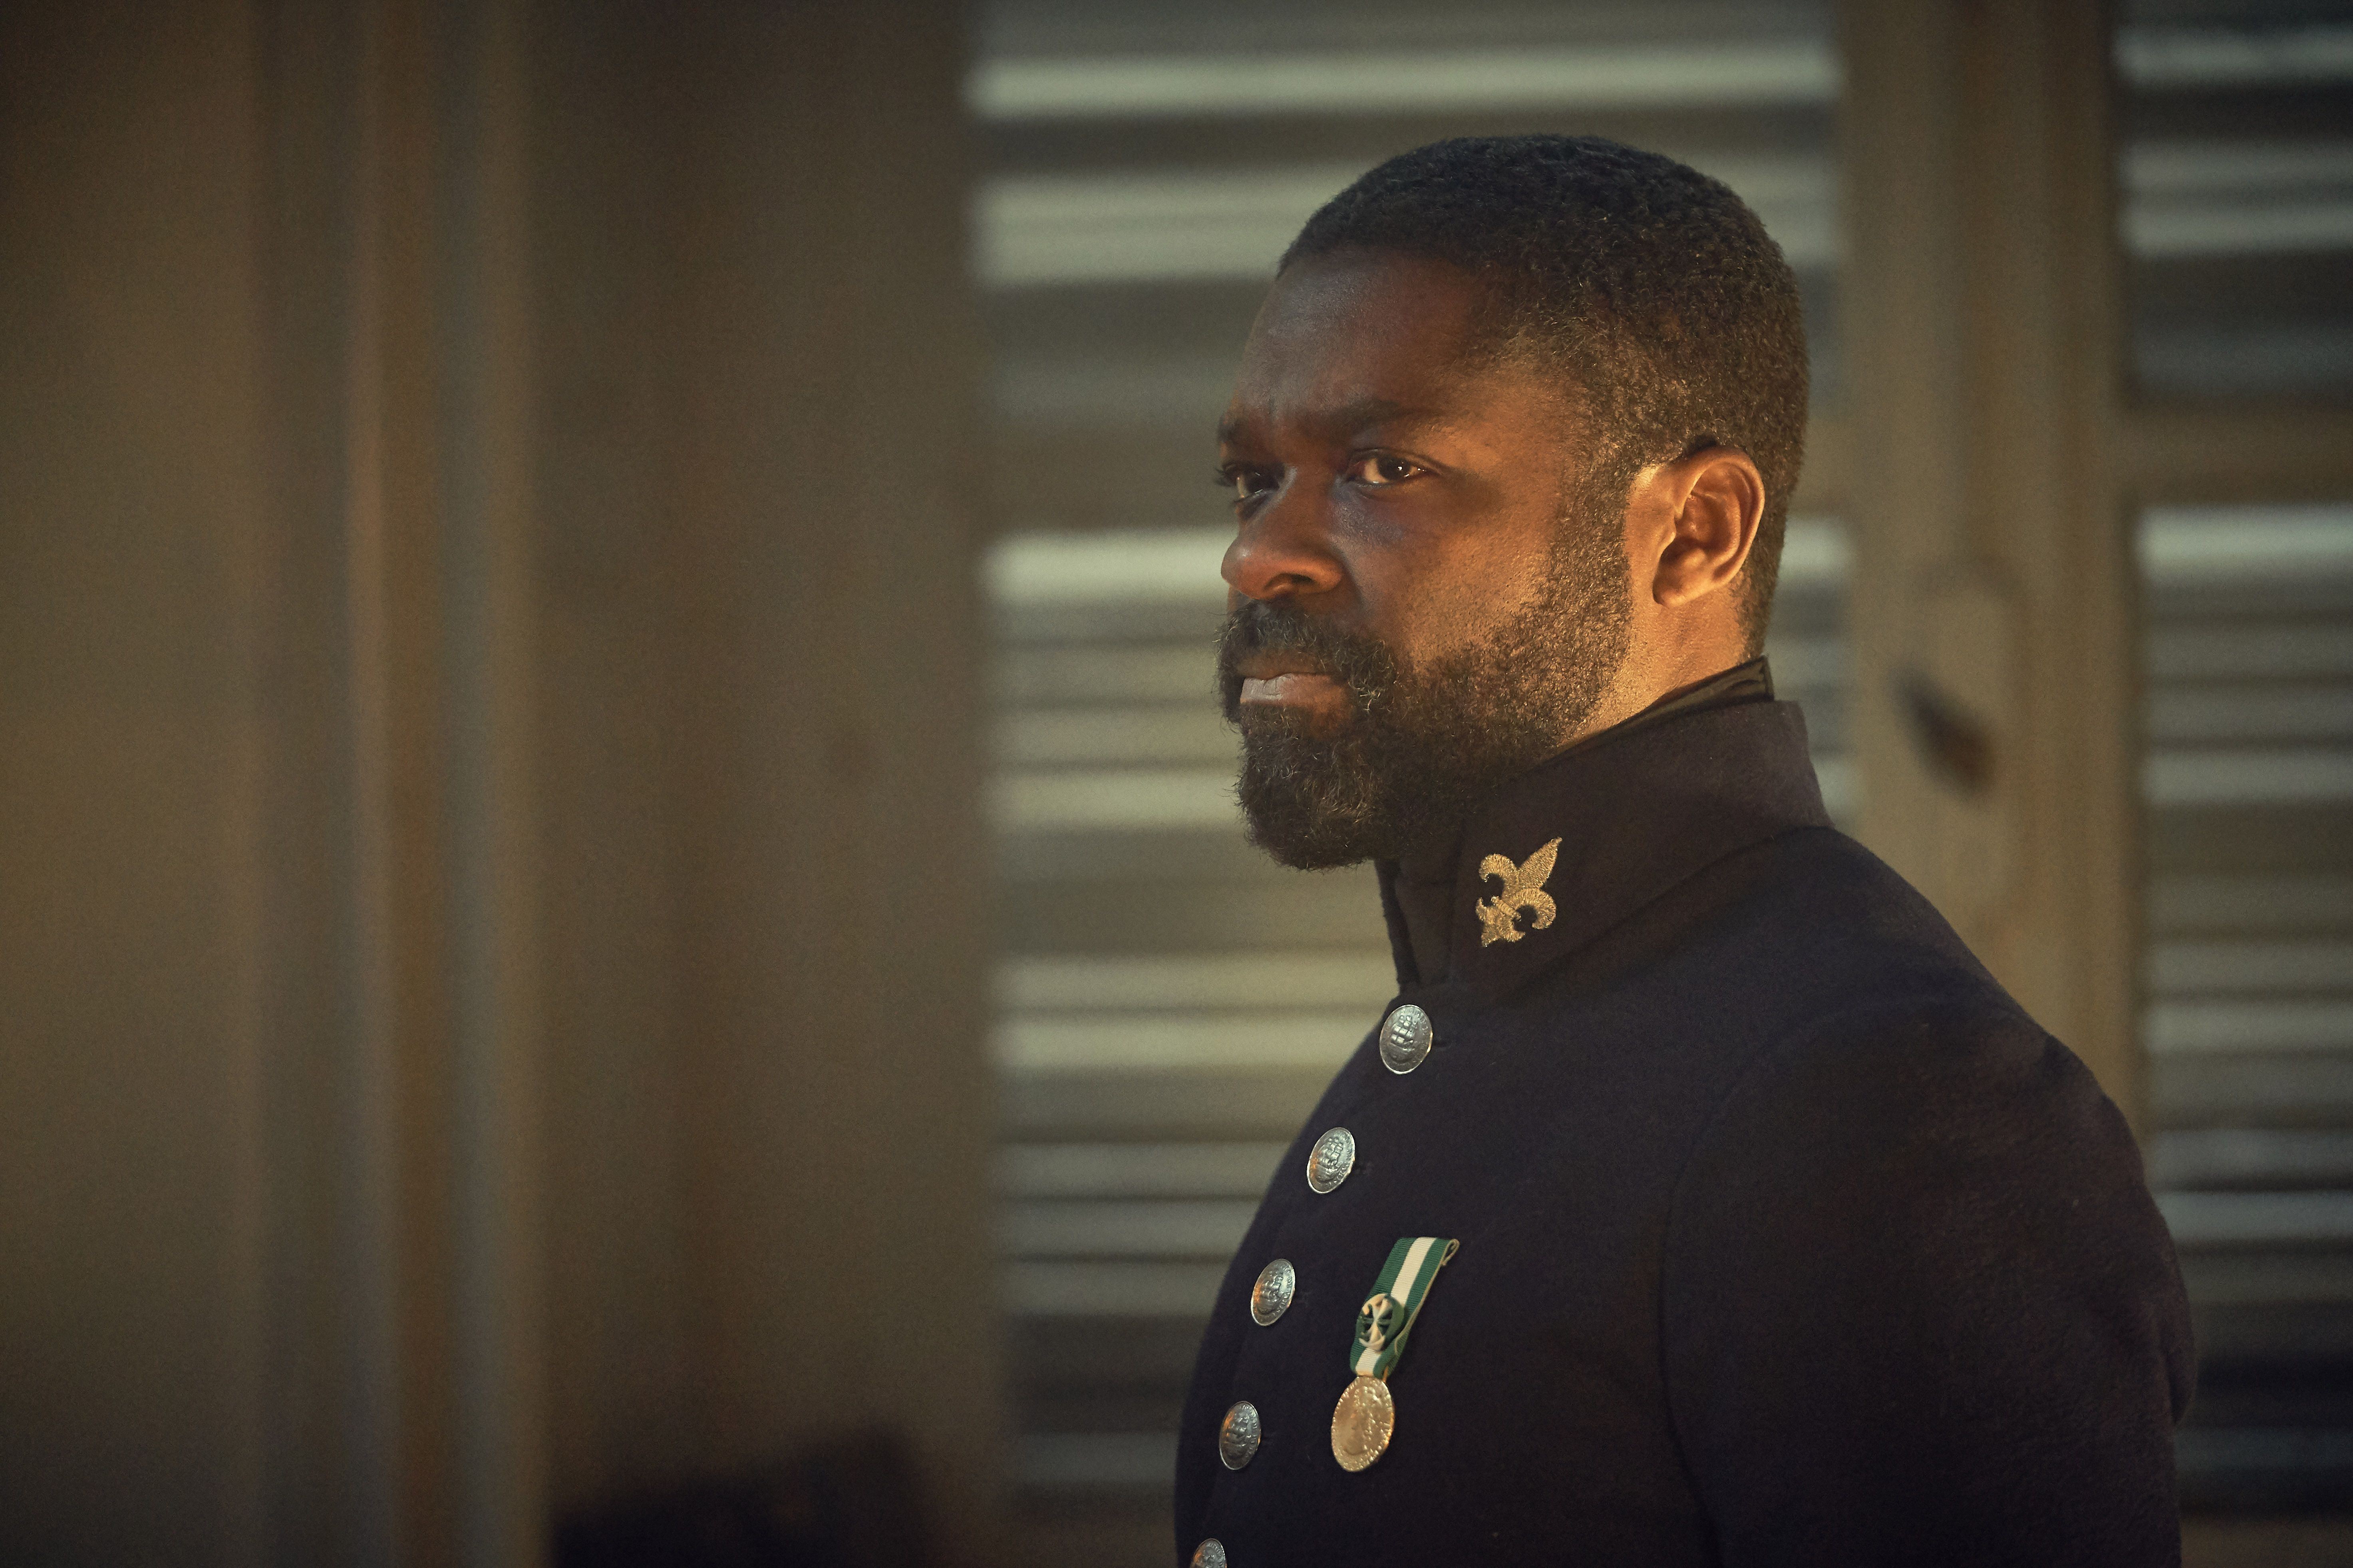 David Oyelowo Javert In The Les Miserables Tv Show On Pbs On